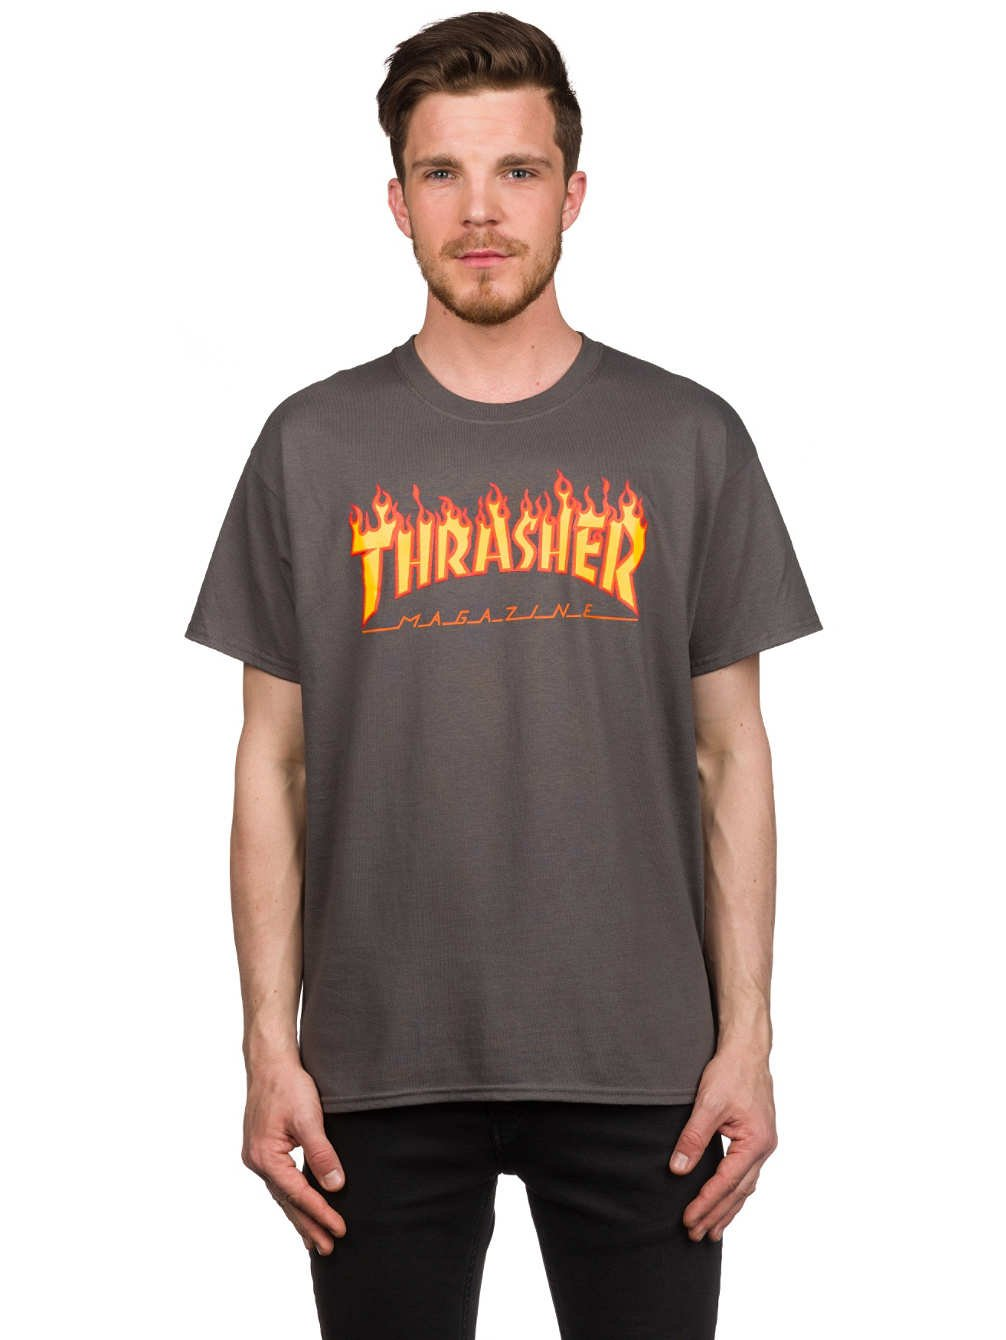 Thrasher Flame T-Shirt (Small, Charcoal)